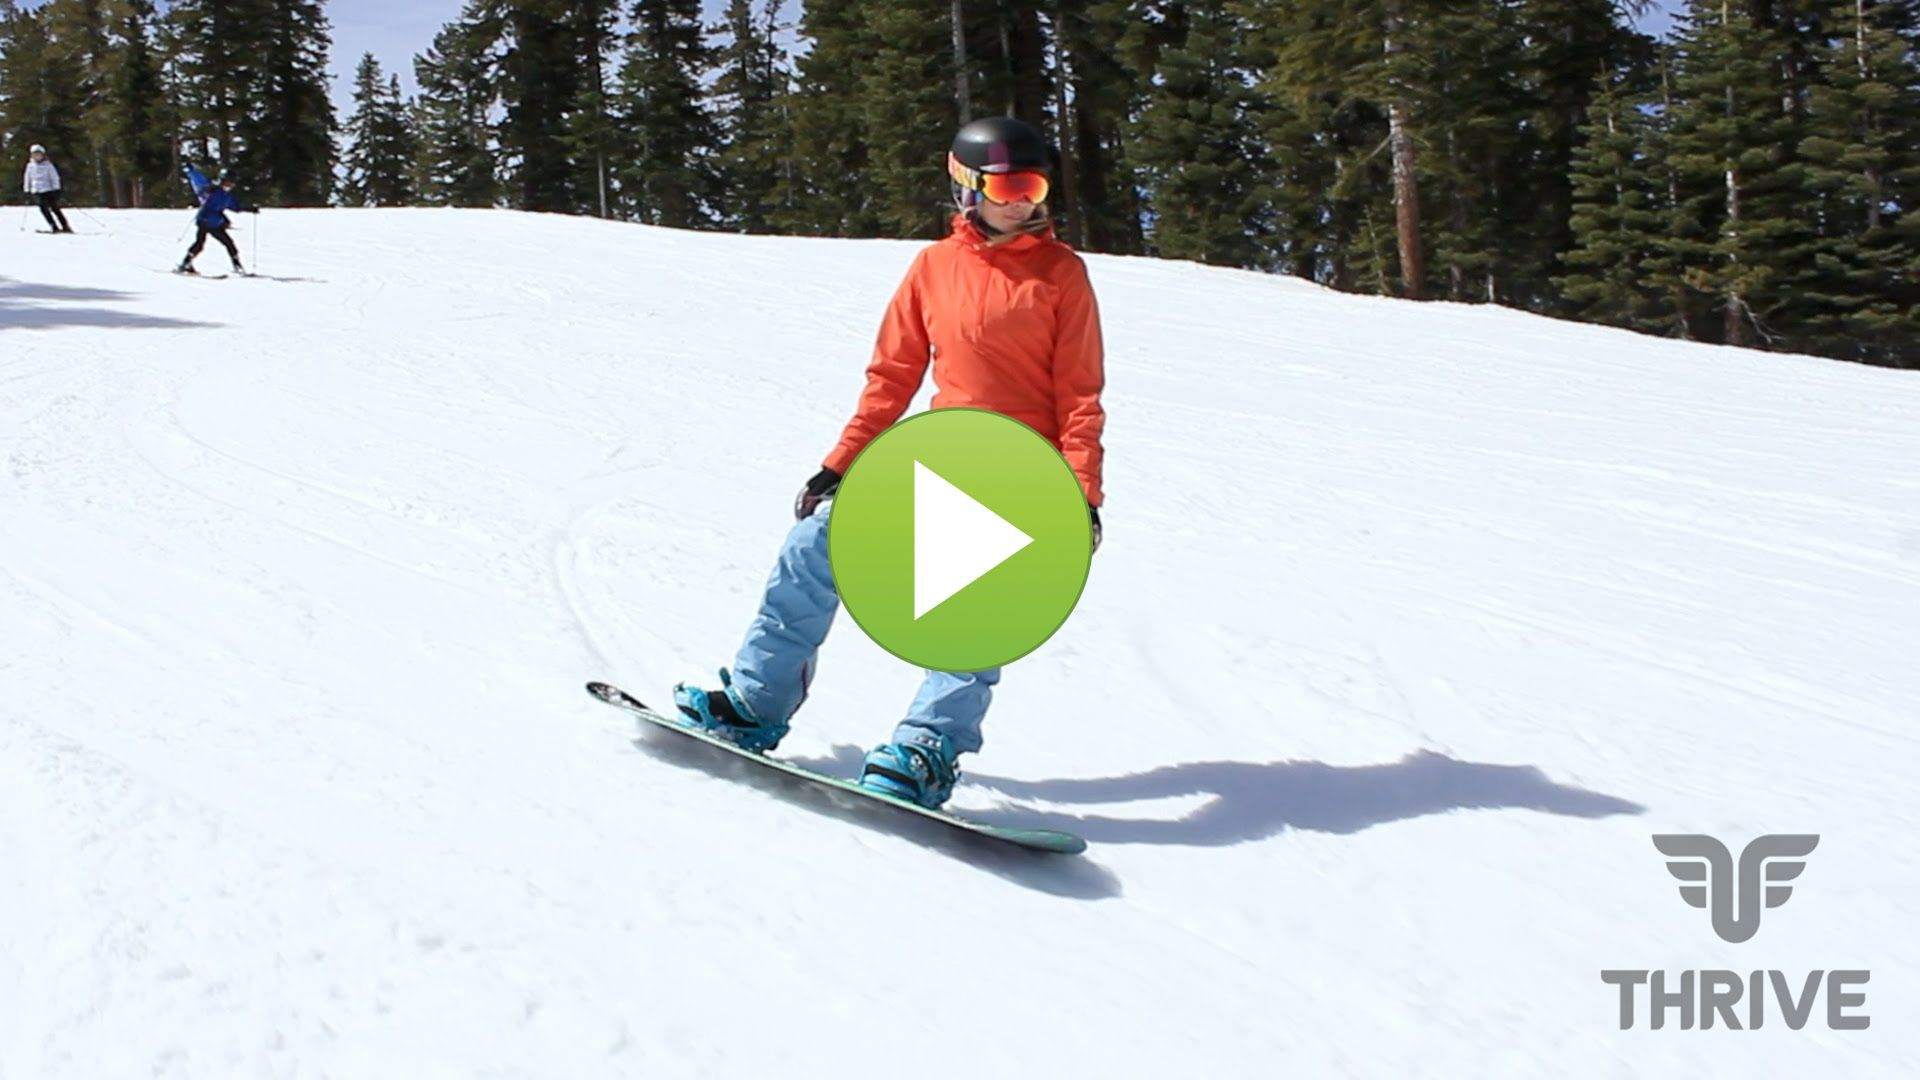 How To Snowboard Rider Stance Snowboarding Snowboard Stance